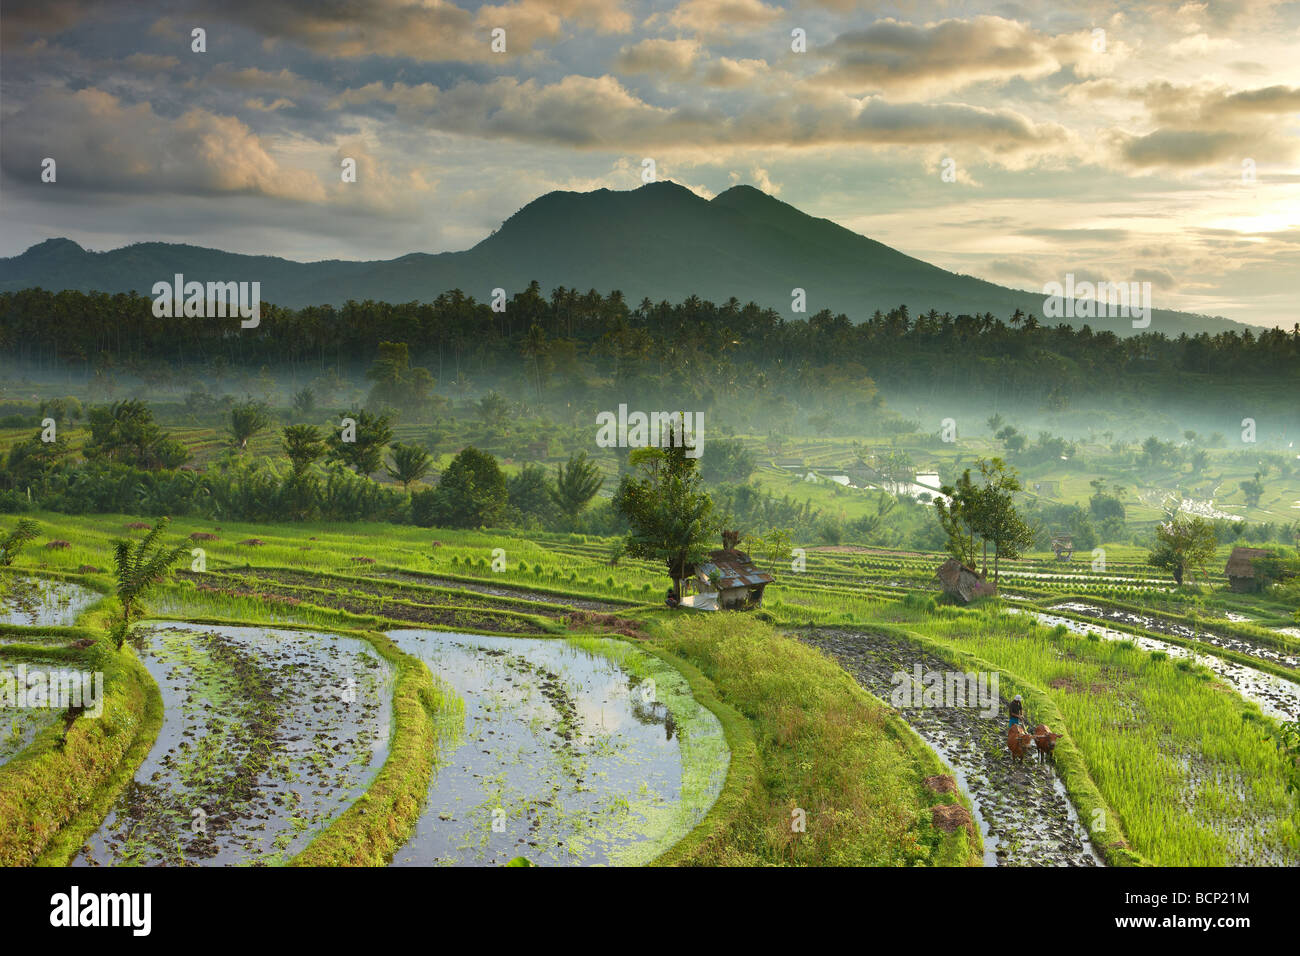 ox driven plough in the terraced rice fields nr Tirtagangga at dawn with the volcanic peak of Gunung Lempuyang, - Stock Image